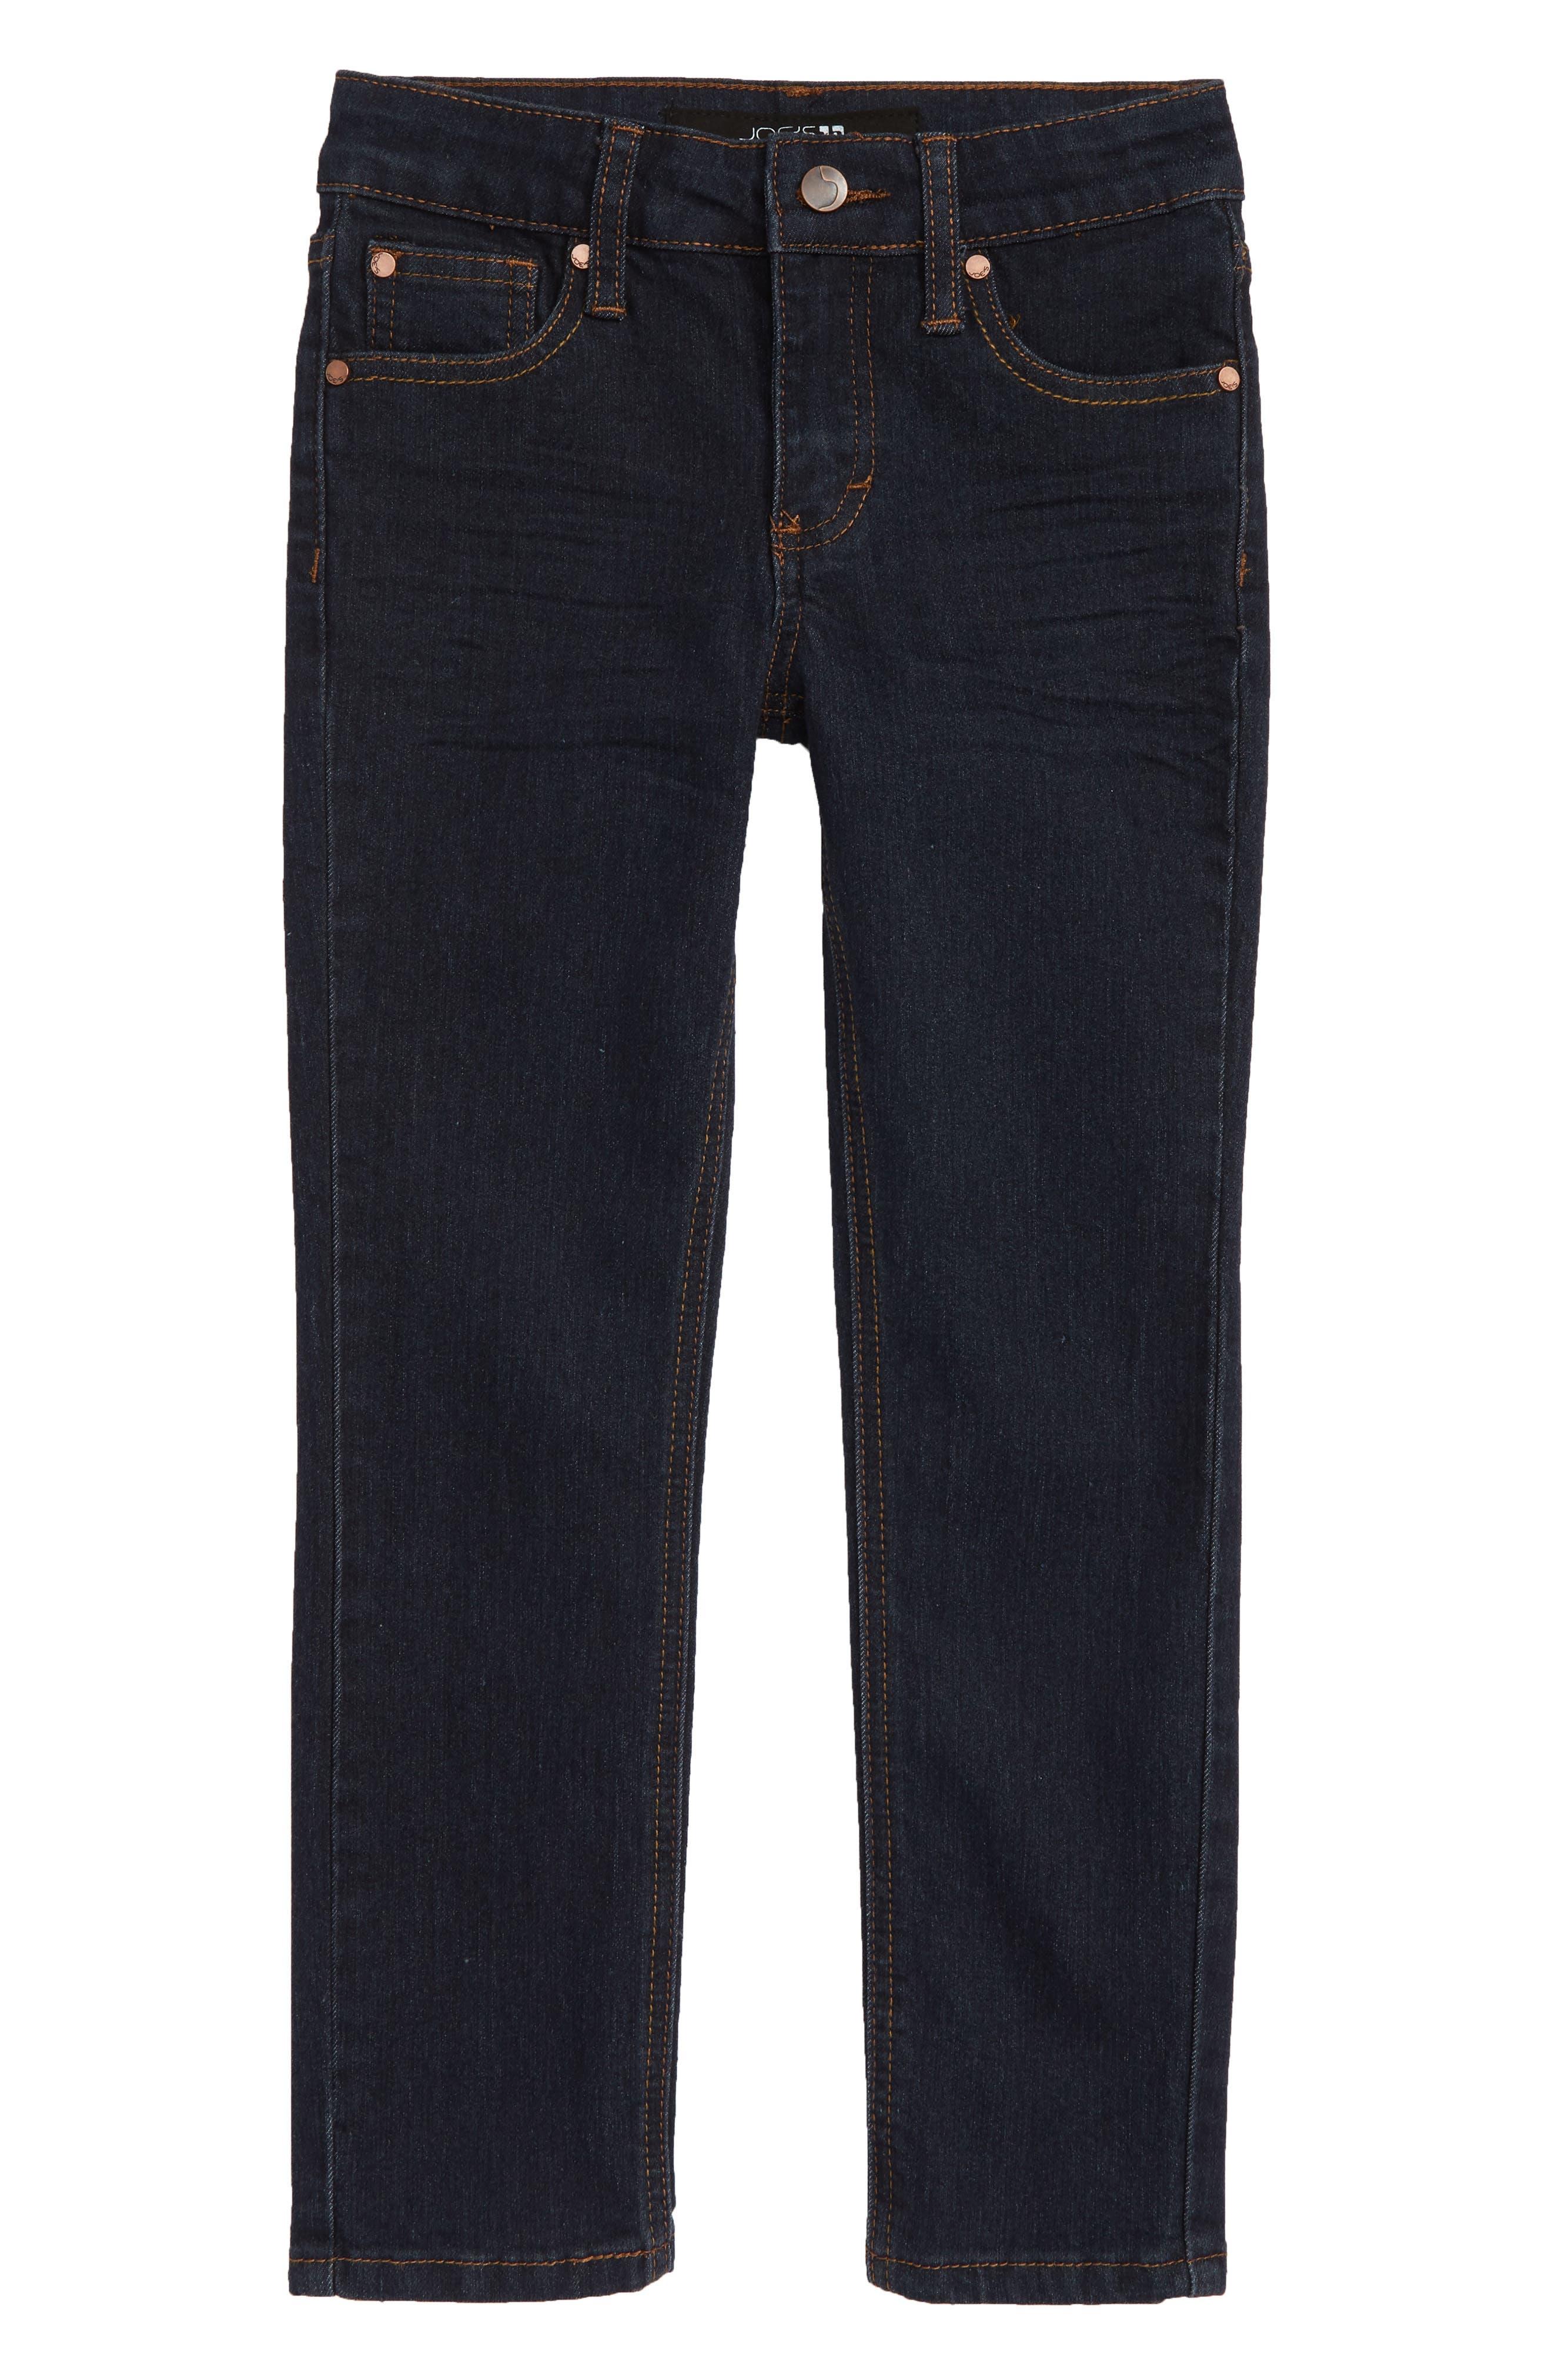 Brixton Stretch Jeans,                         Main,                         color, Rinse